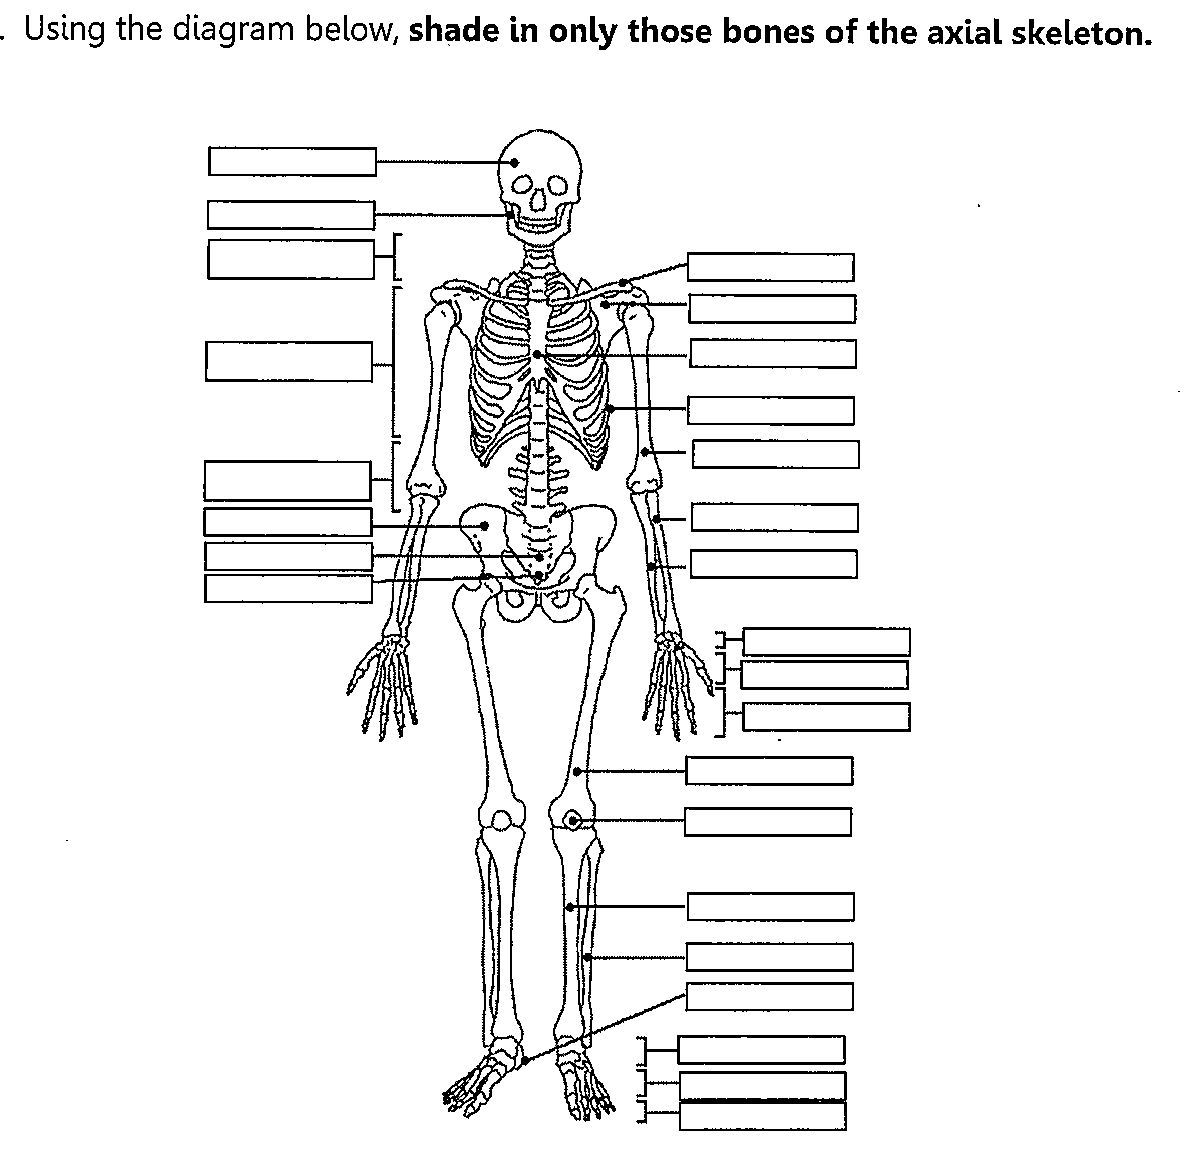 Unlabeled Diagram Of The Human Skeleton . Unlabeled